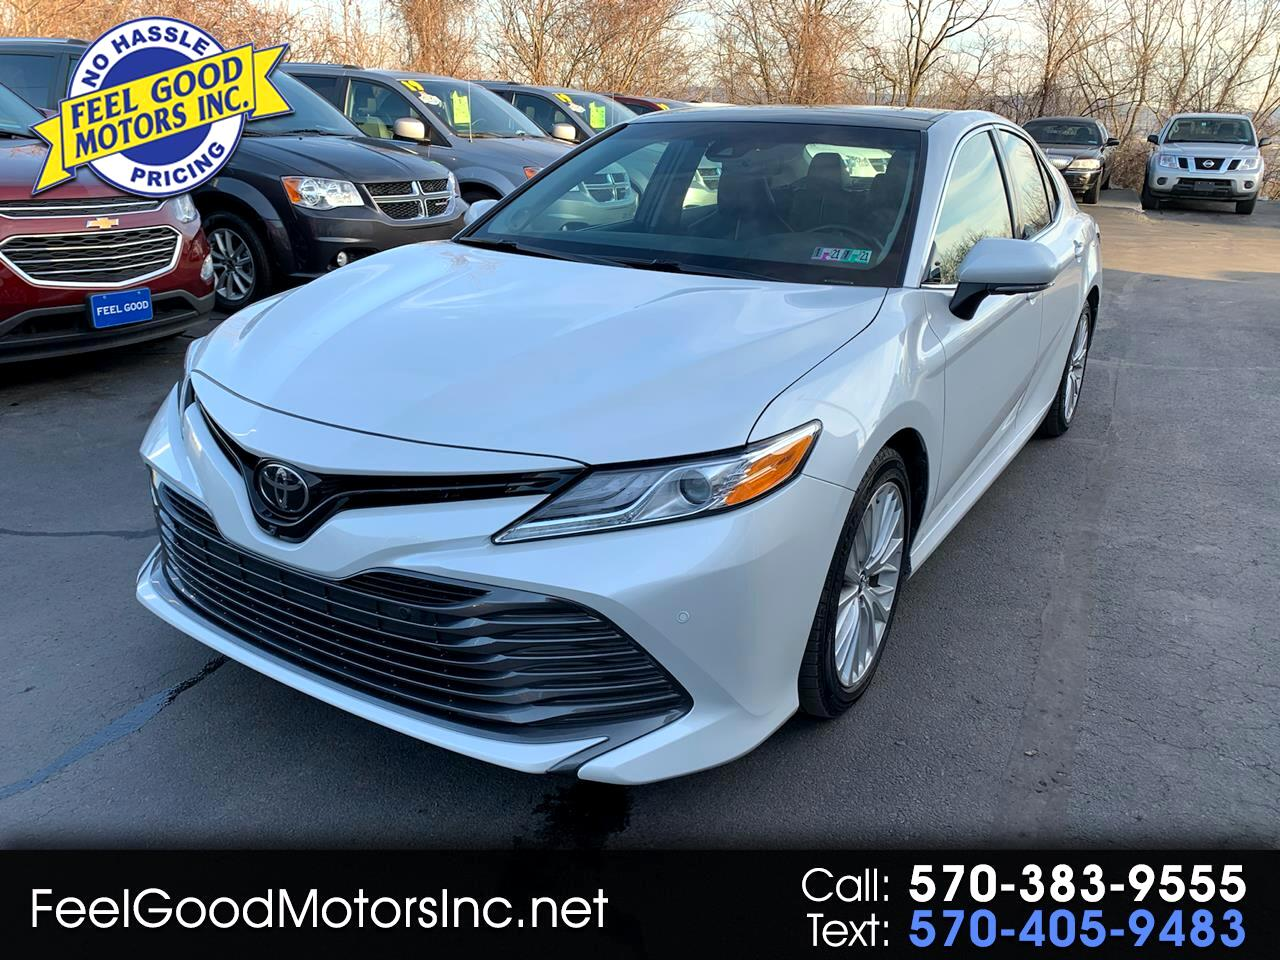 Toyota Camry 2014.5 4dr Sdn I4 Auto XLE (Natl) 2018